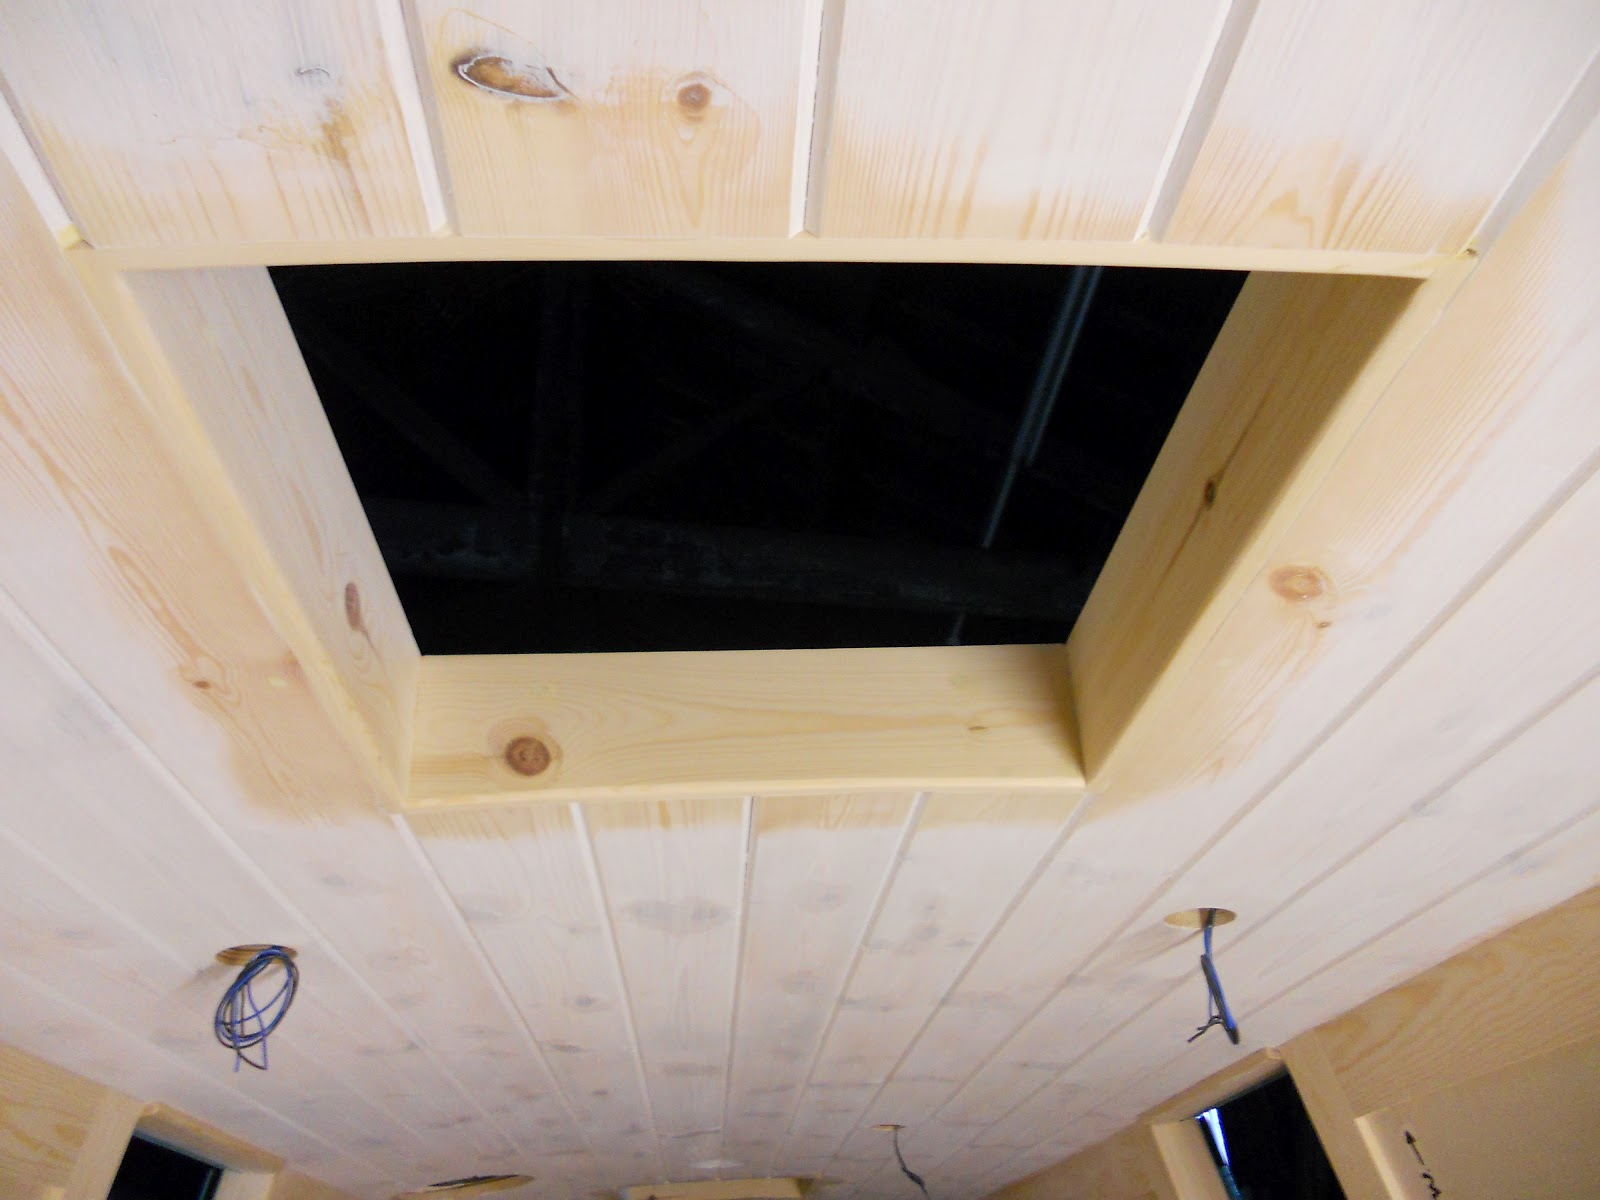 Harris Amp Watson Narrowboat Build Roof Hatch And Prism Trim